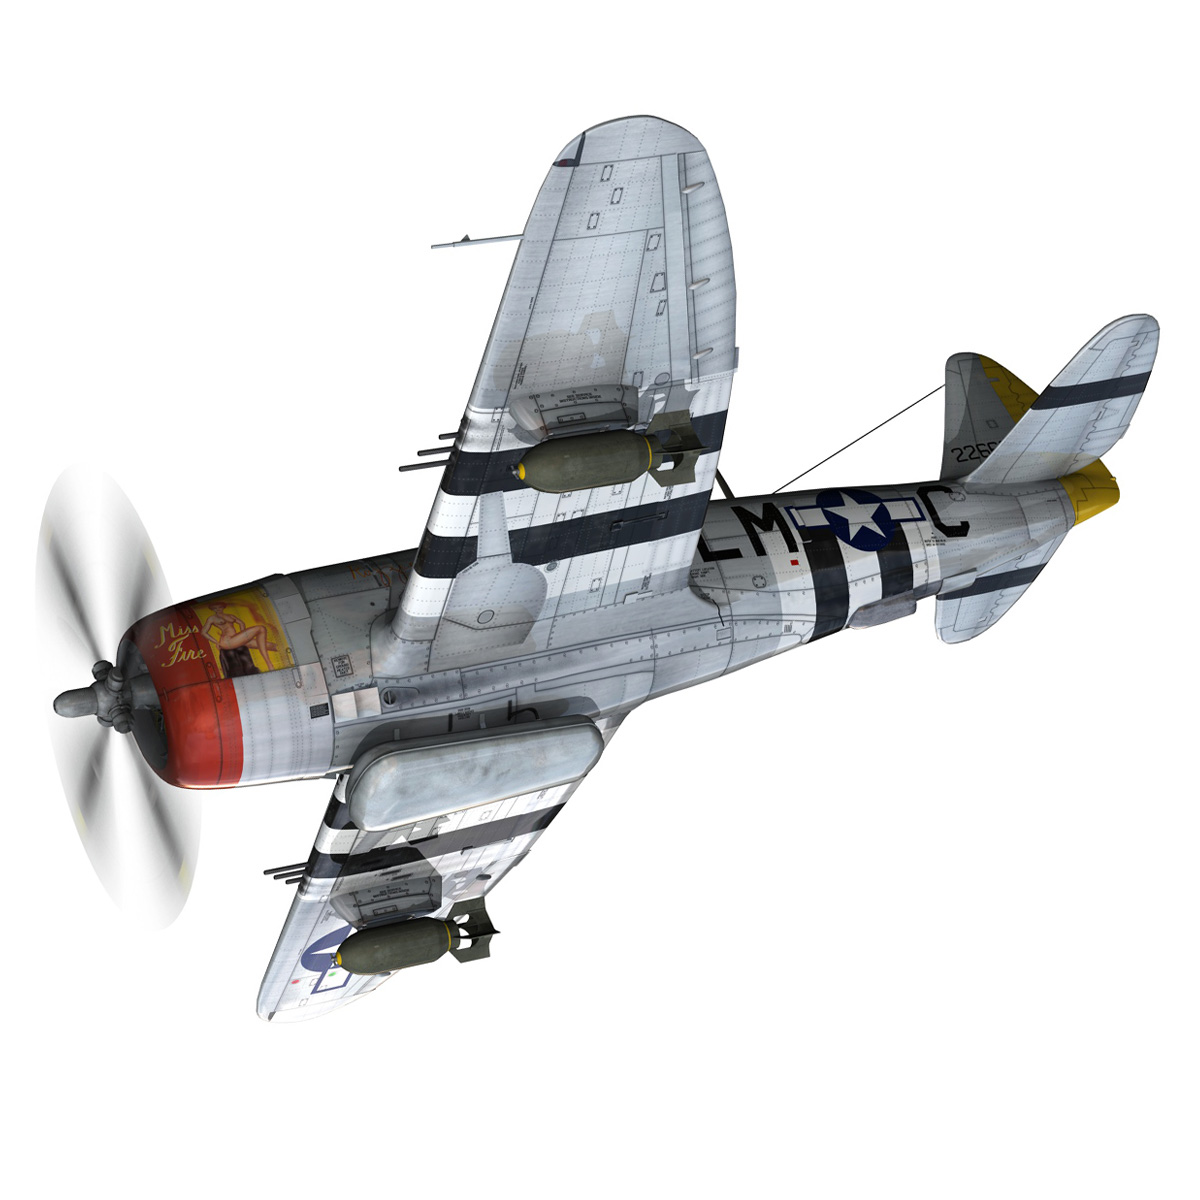 Republic P-47D Thunderbolt - Rozzie Geth II 3d model  279770